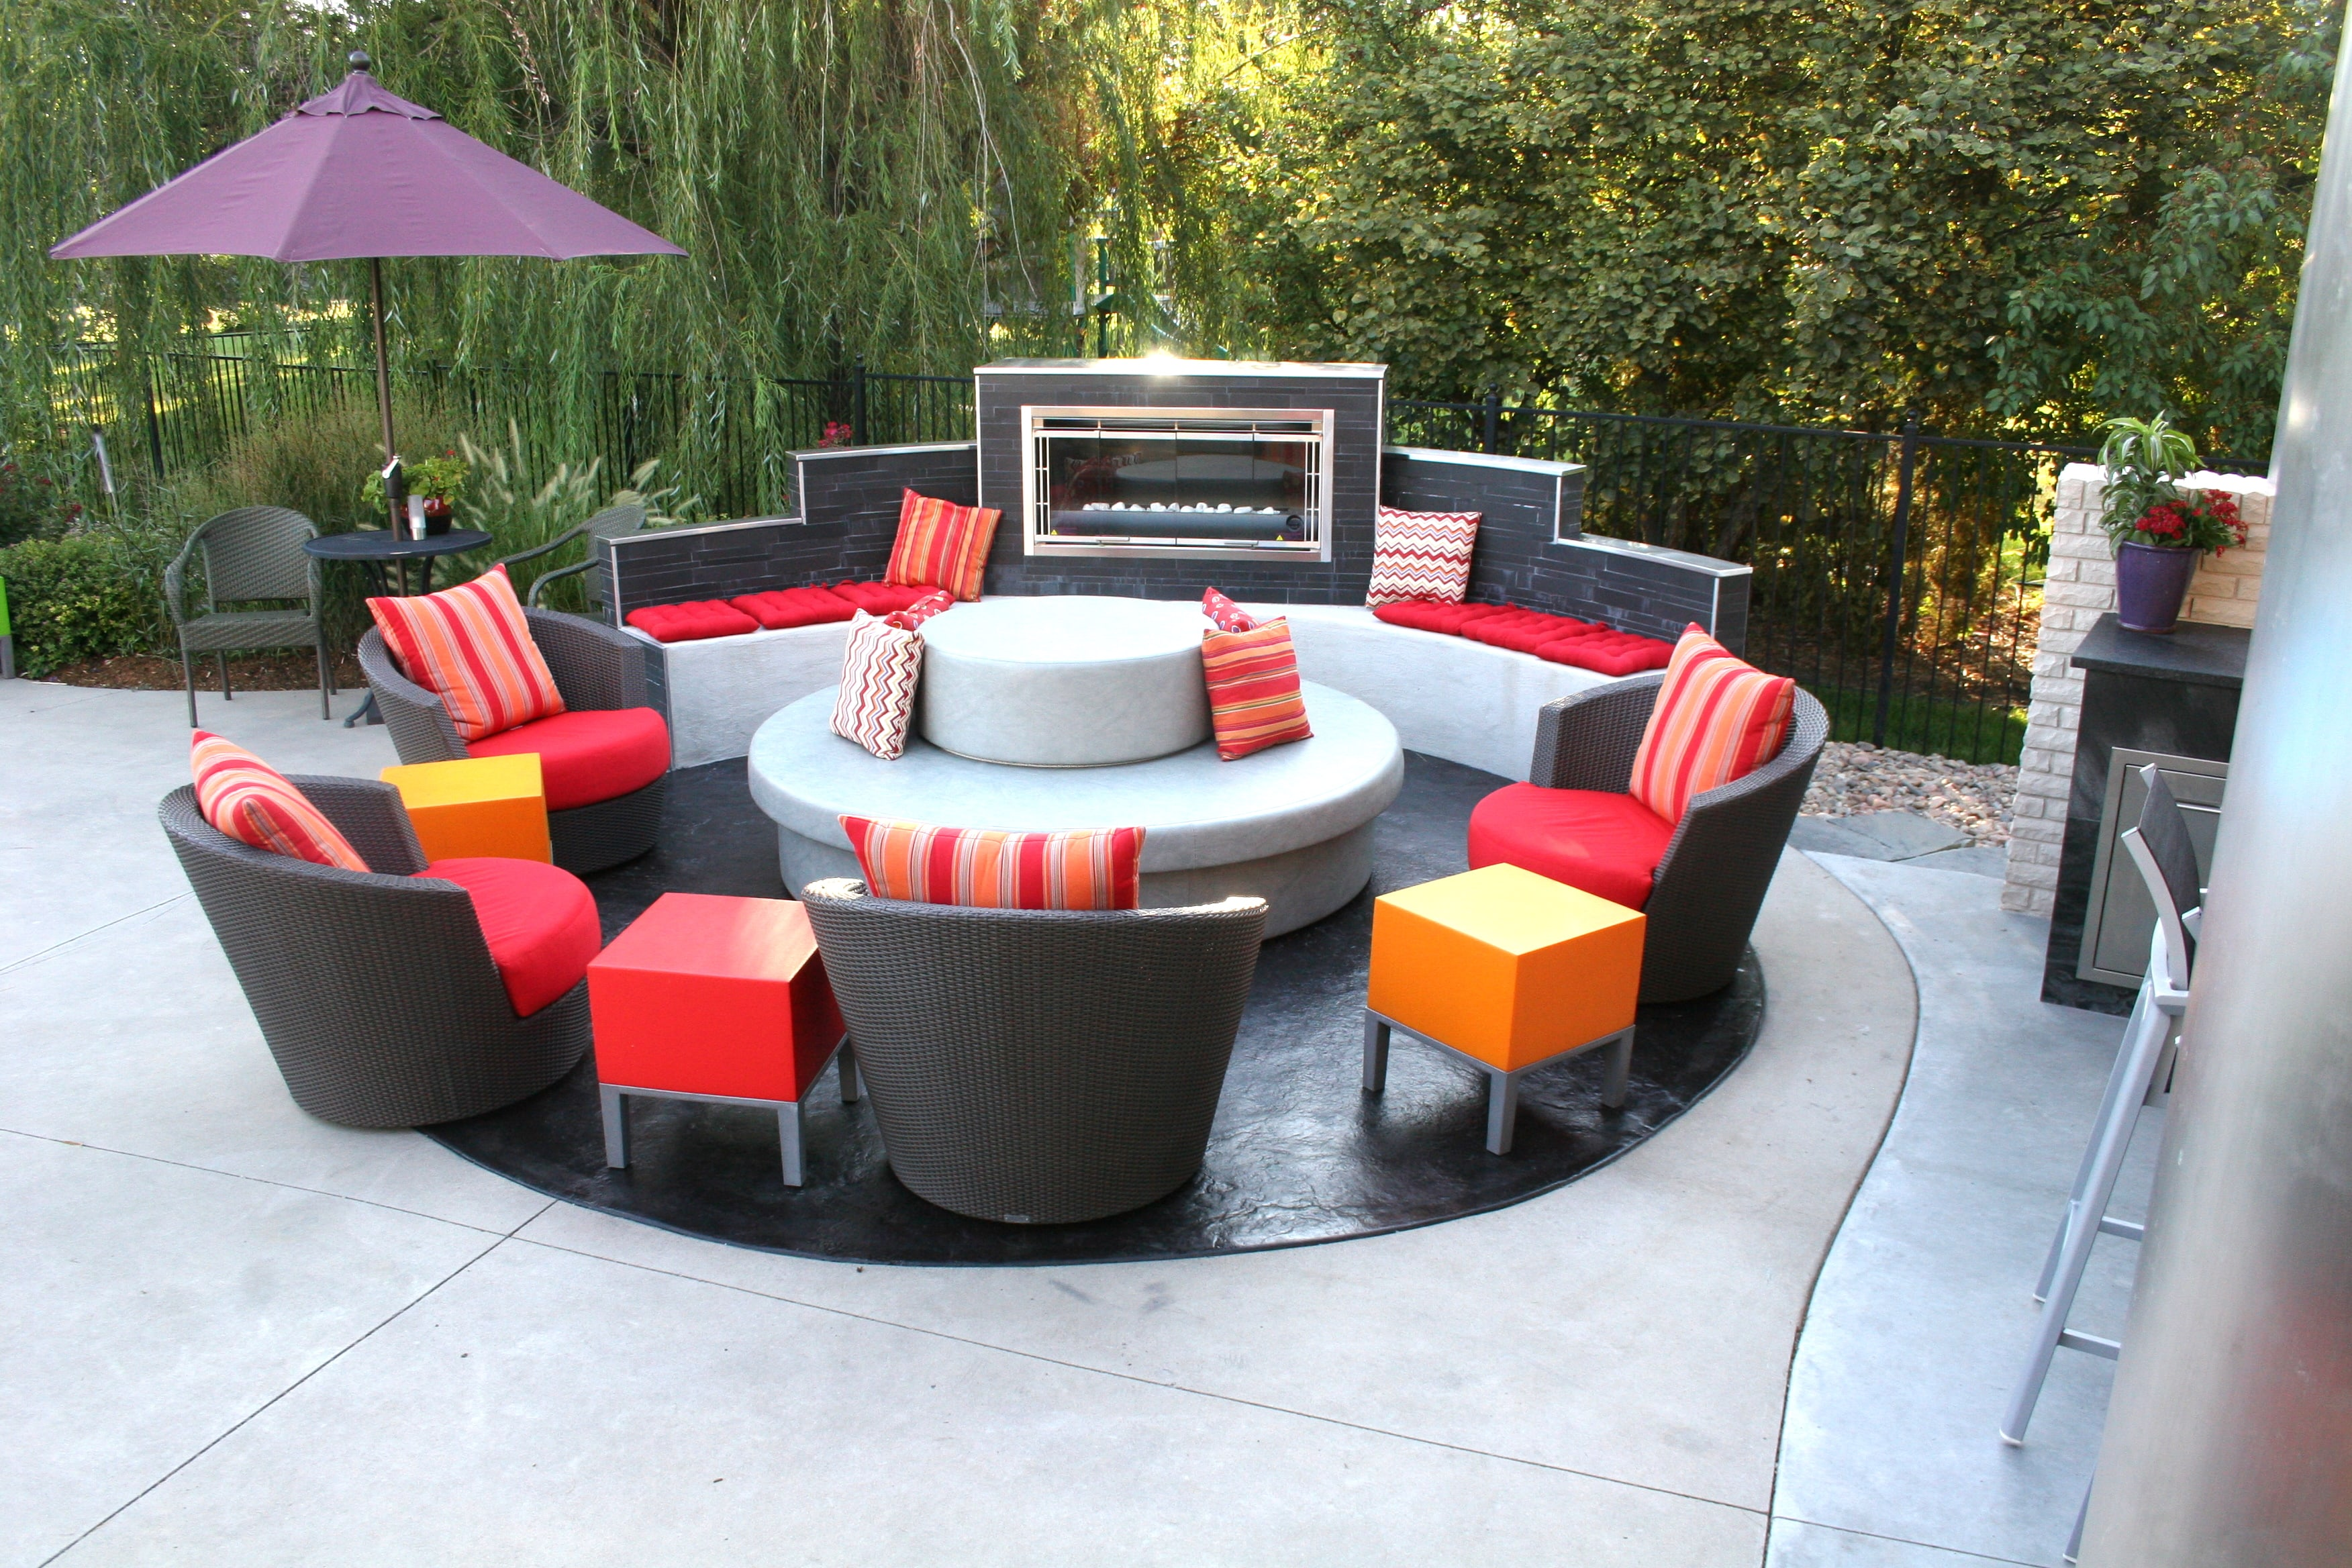 Tri level outdoor fireplace partially surrounding a circular conversation area.